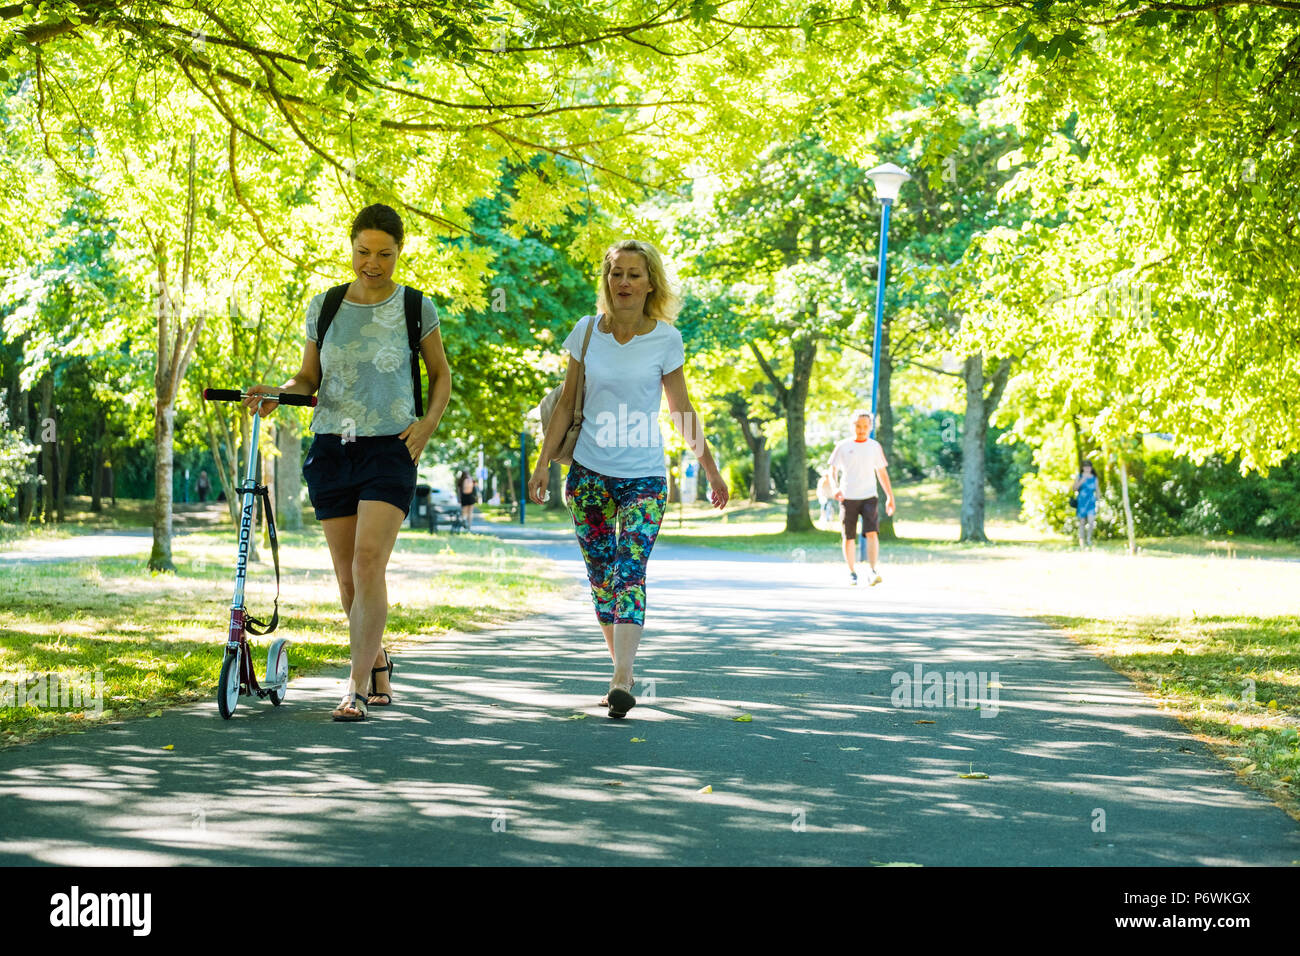 Aberystwyth, Wales, UK. 3rd July, 2018. UK Weather: People walking Plas Crug park on another hot and sunny Morning in Aberystwyth Wales. The prolonged period of extreme heat and very dry weather is forecast to last for another two weeks, bringing the threat of drought and water shortages to some areas. photo Credit: keith morris/Alamy Live News - Stock Image